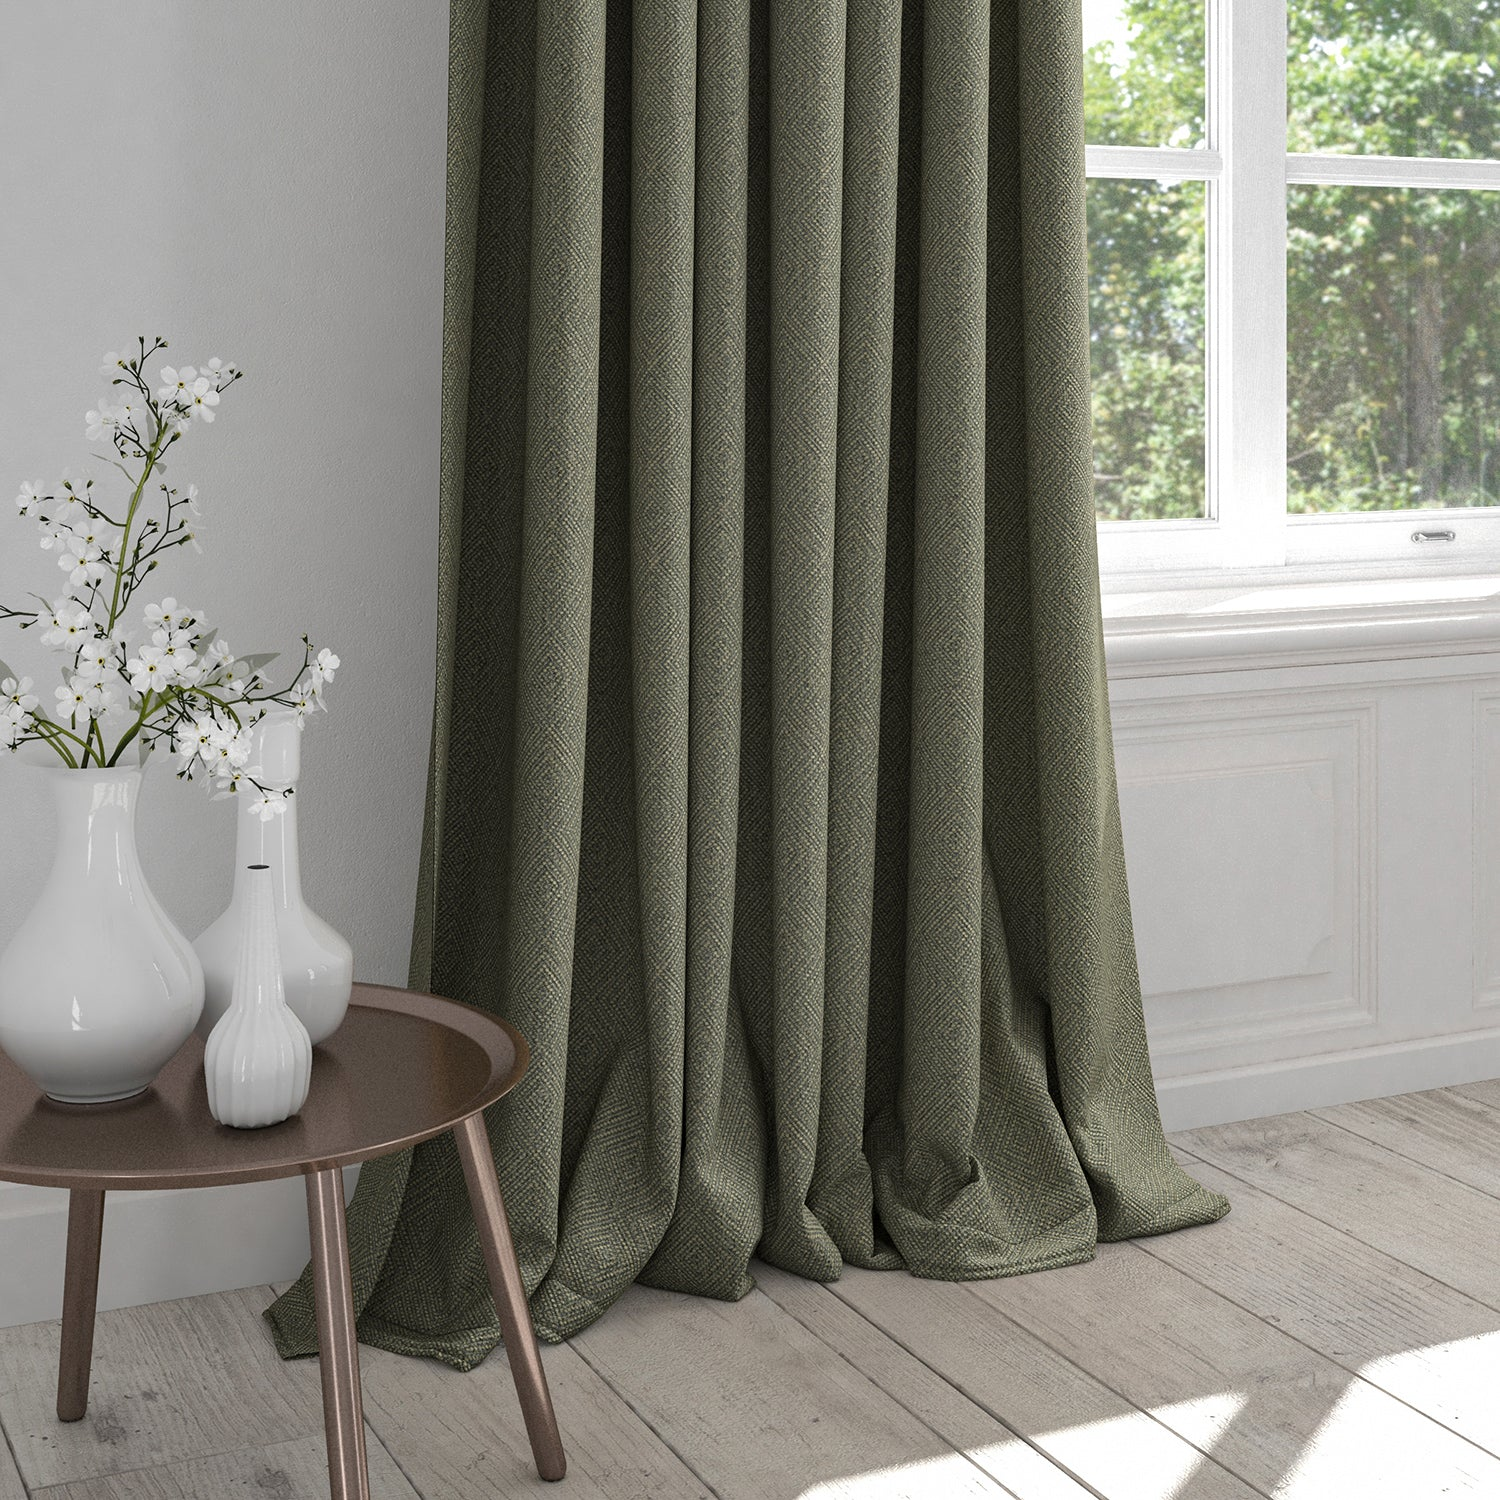 Curtain in a dark grey fabric with a light neutral geometric design